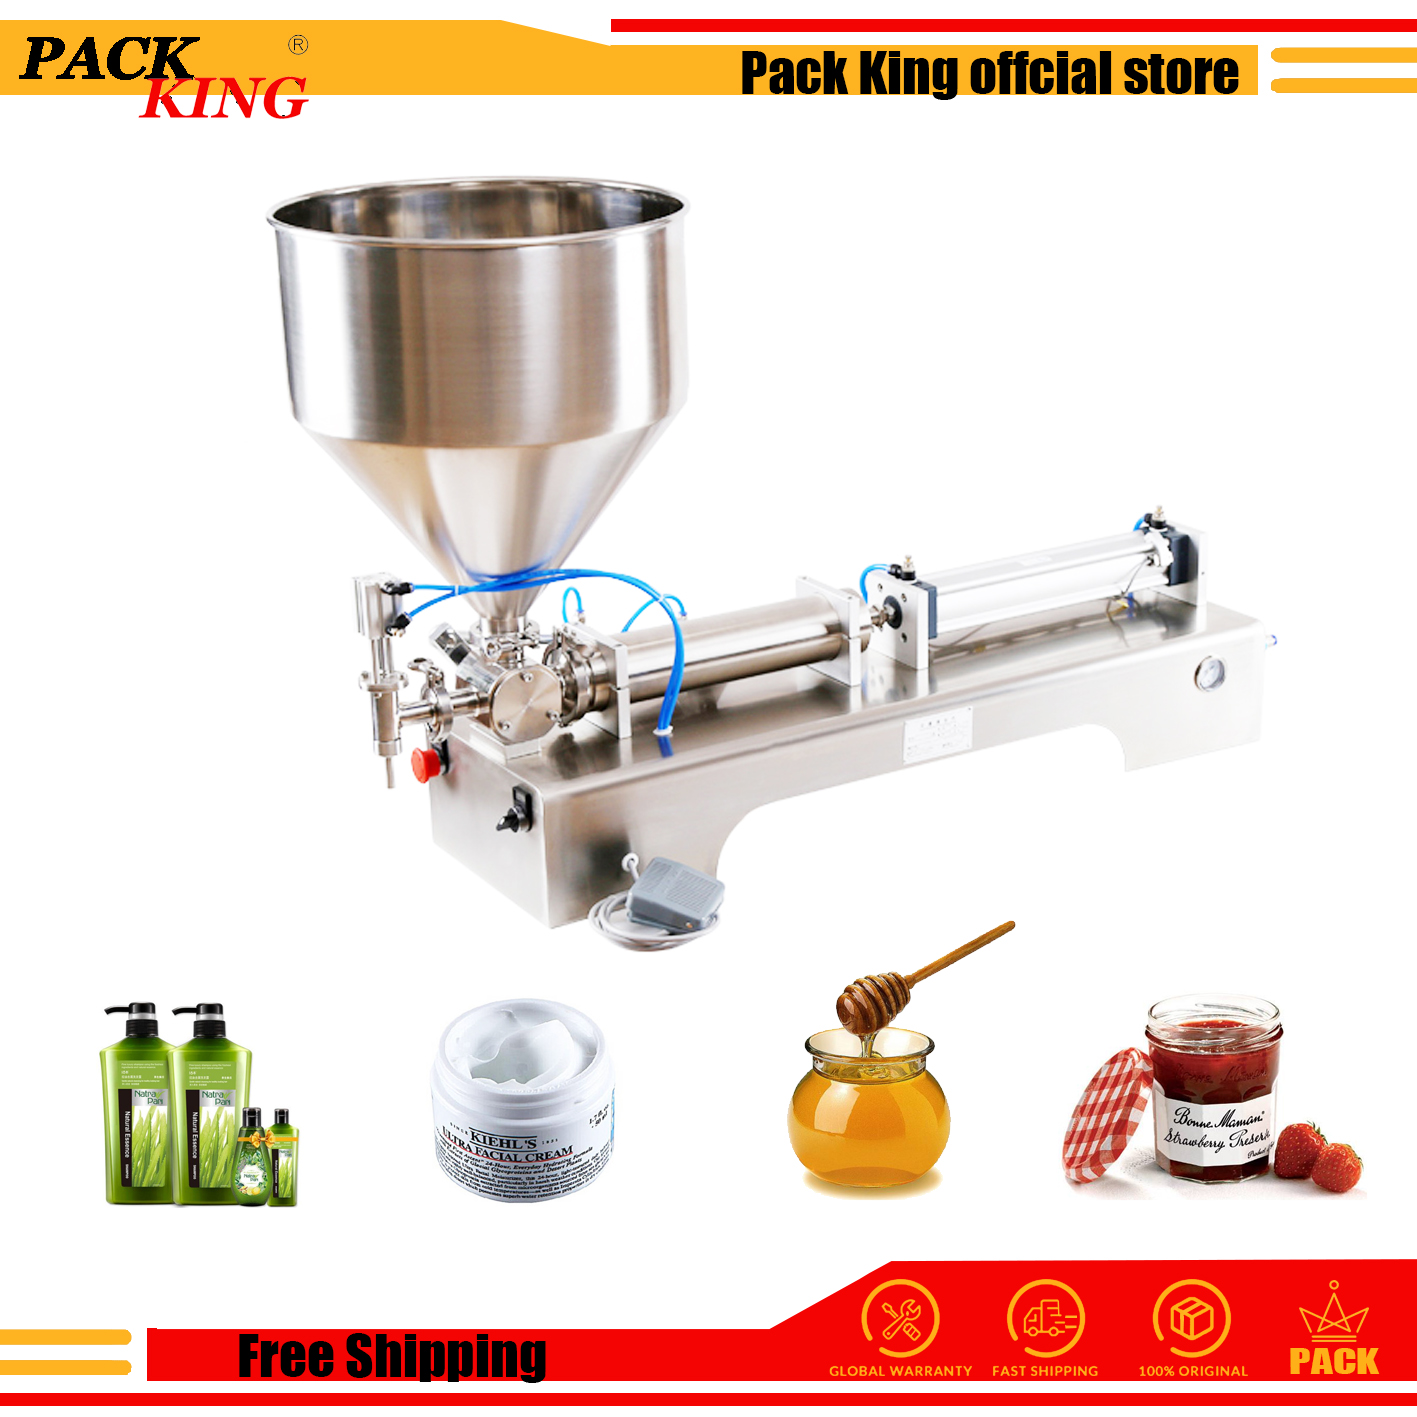 Lotion Shampoo Cream Filler Honey Sauce Paste Peanut Butter Jam Ejuice Tomato Ketchup Filling Machine Pneumatic Free Shipping